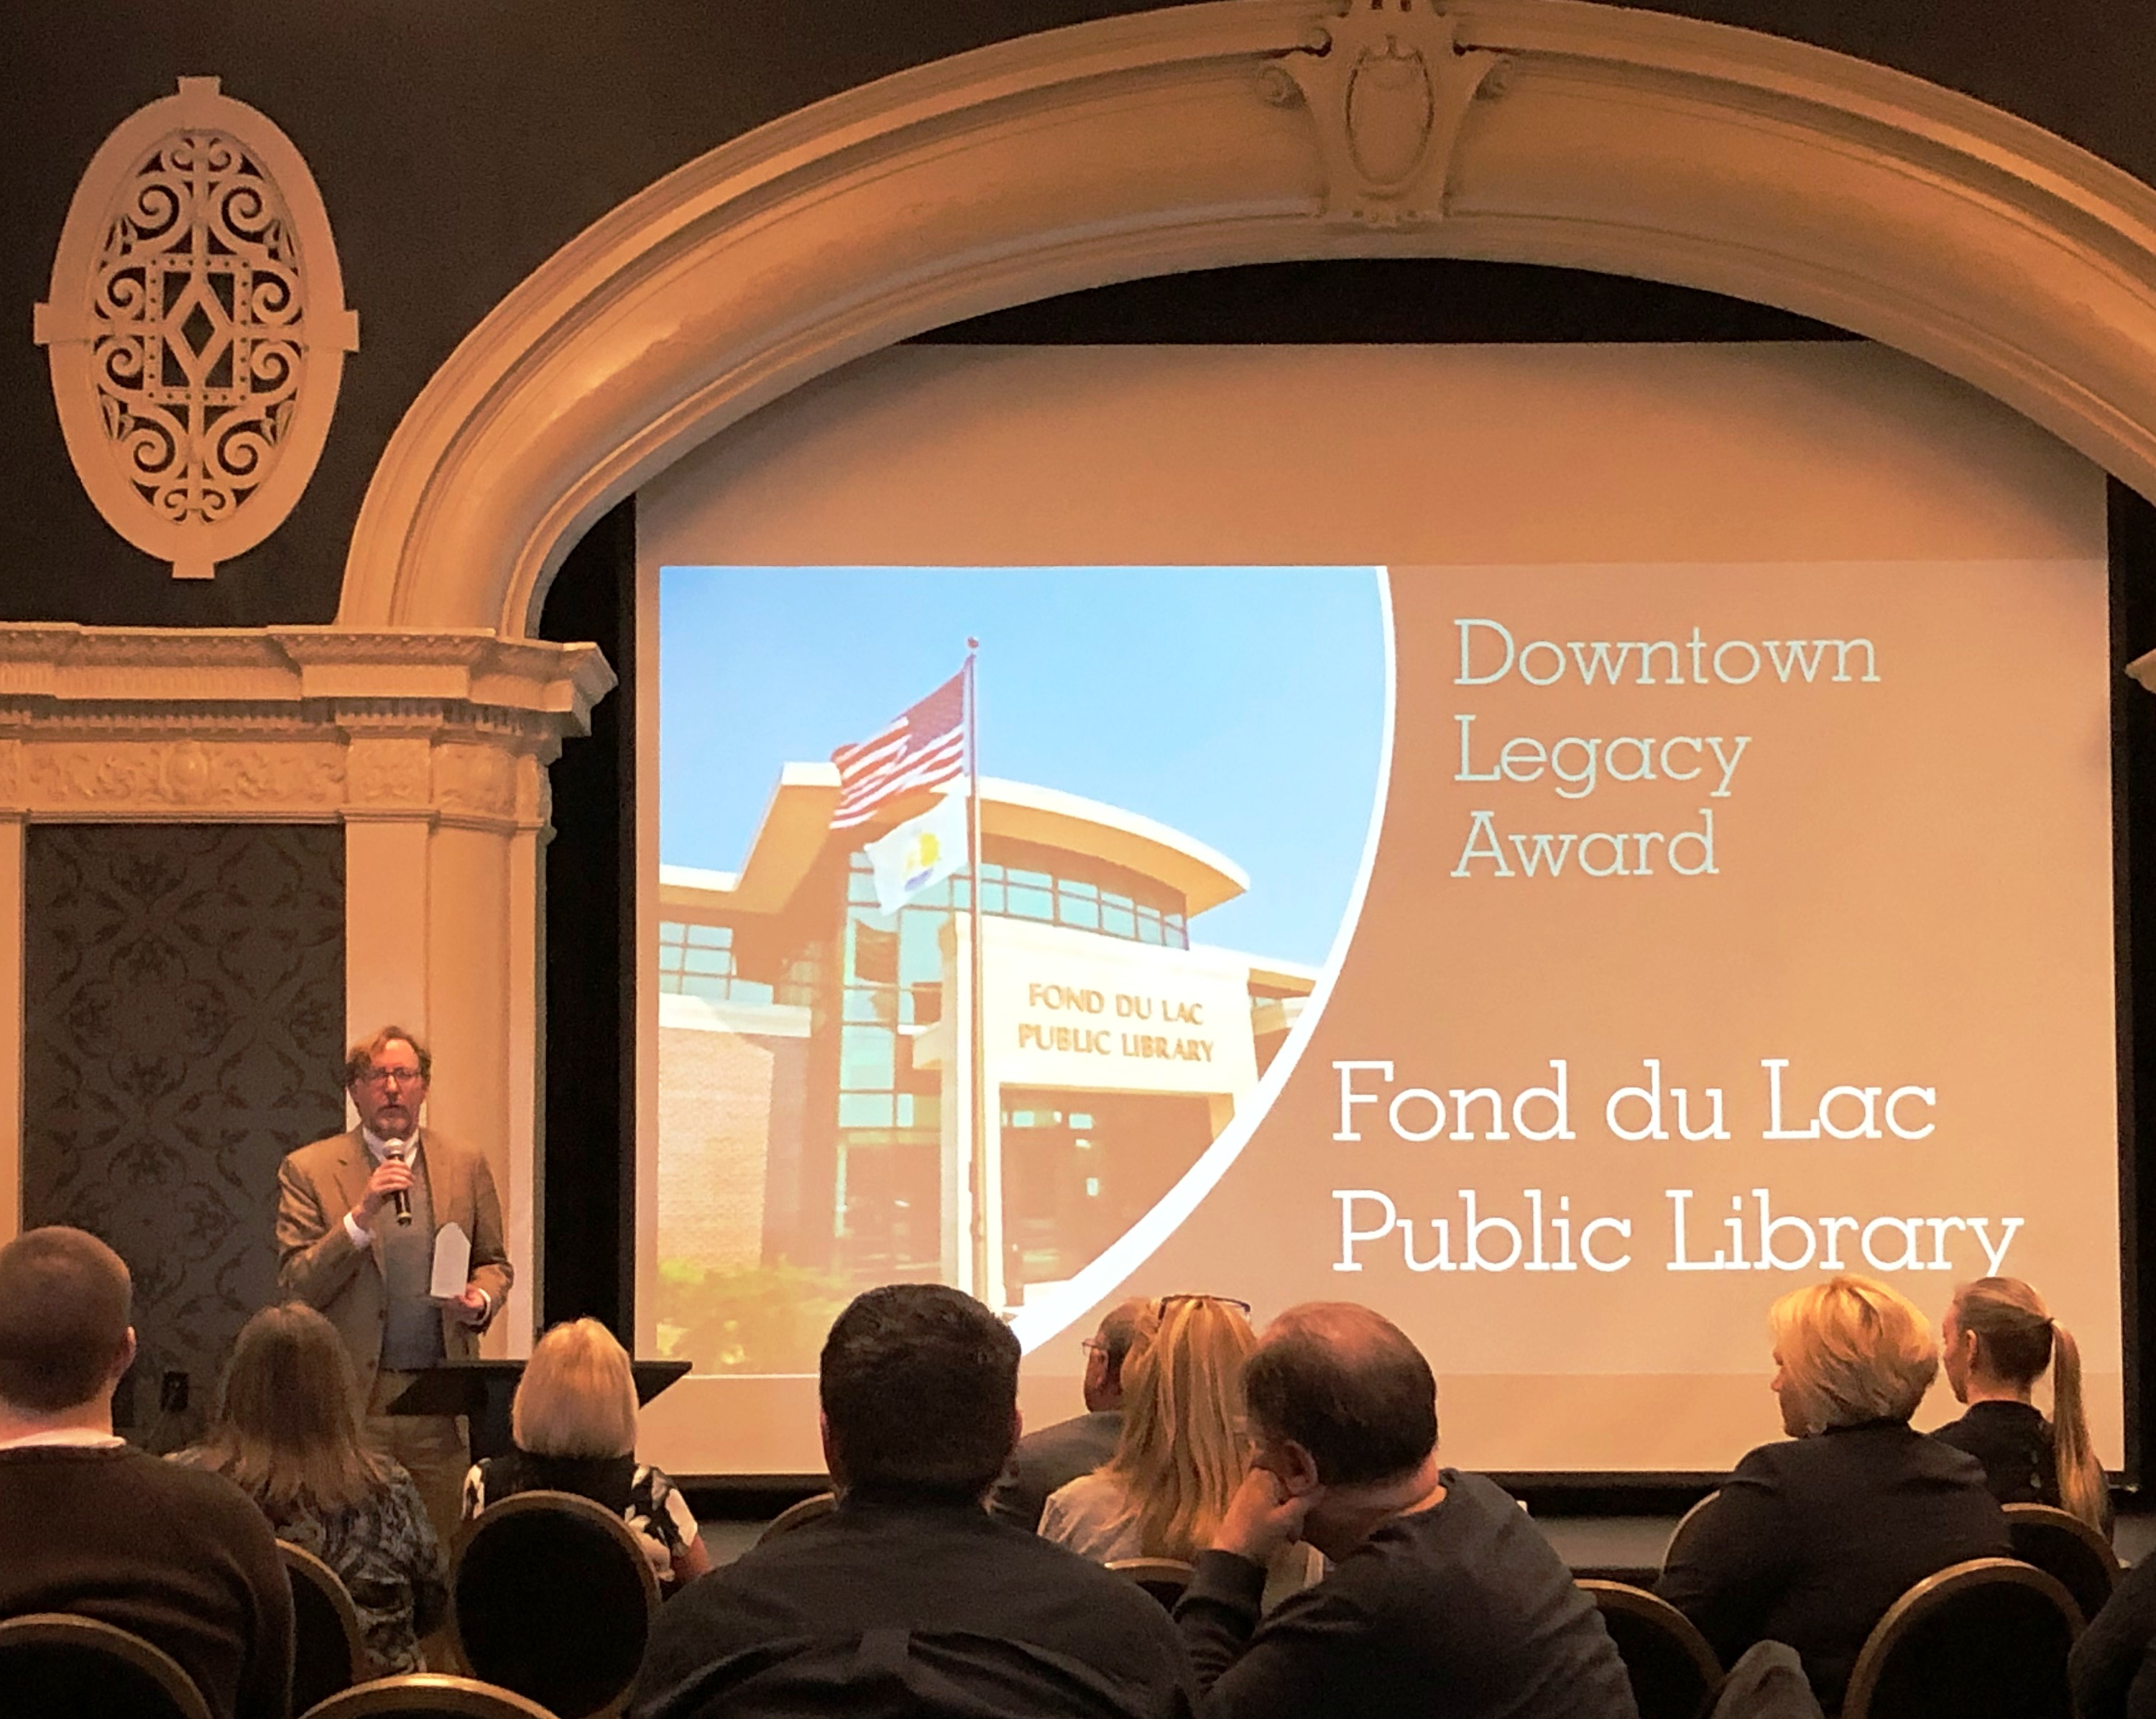 'Gem' library receives downtown Legacy Award